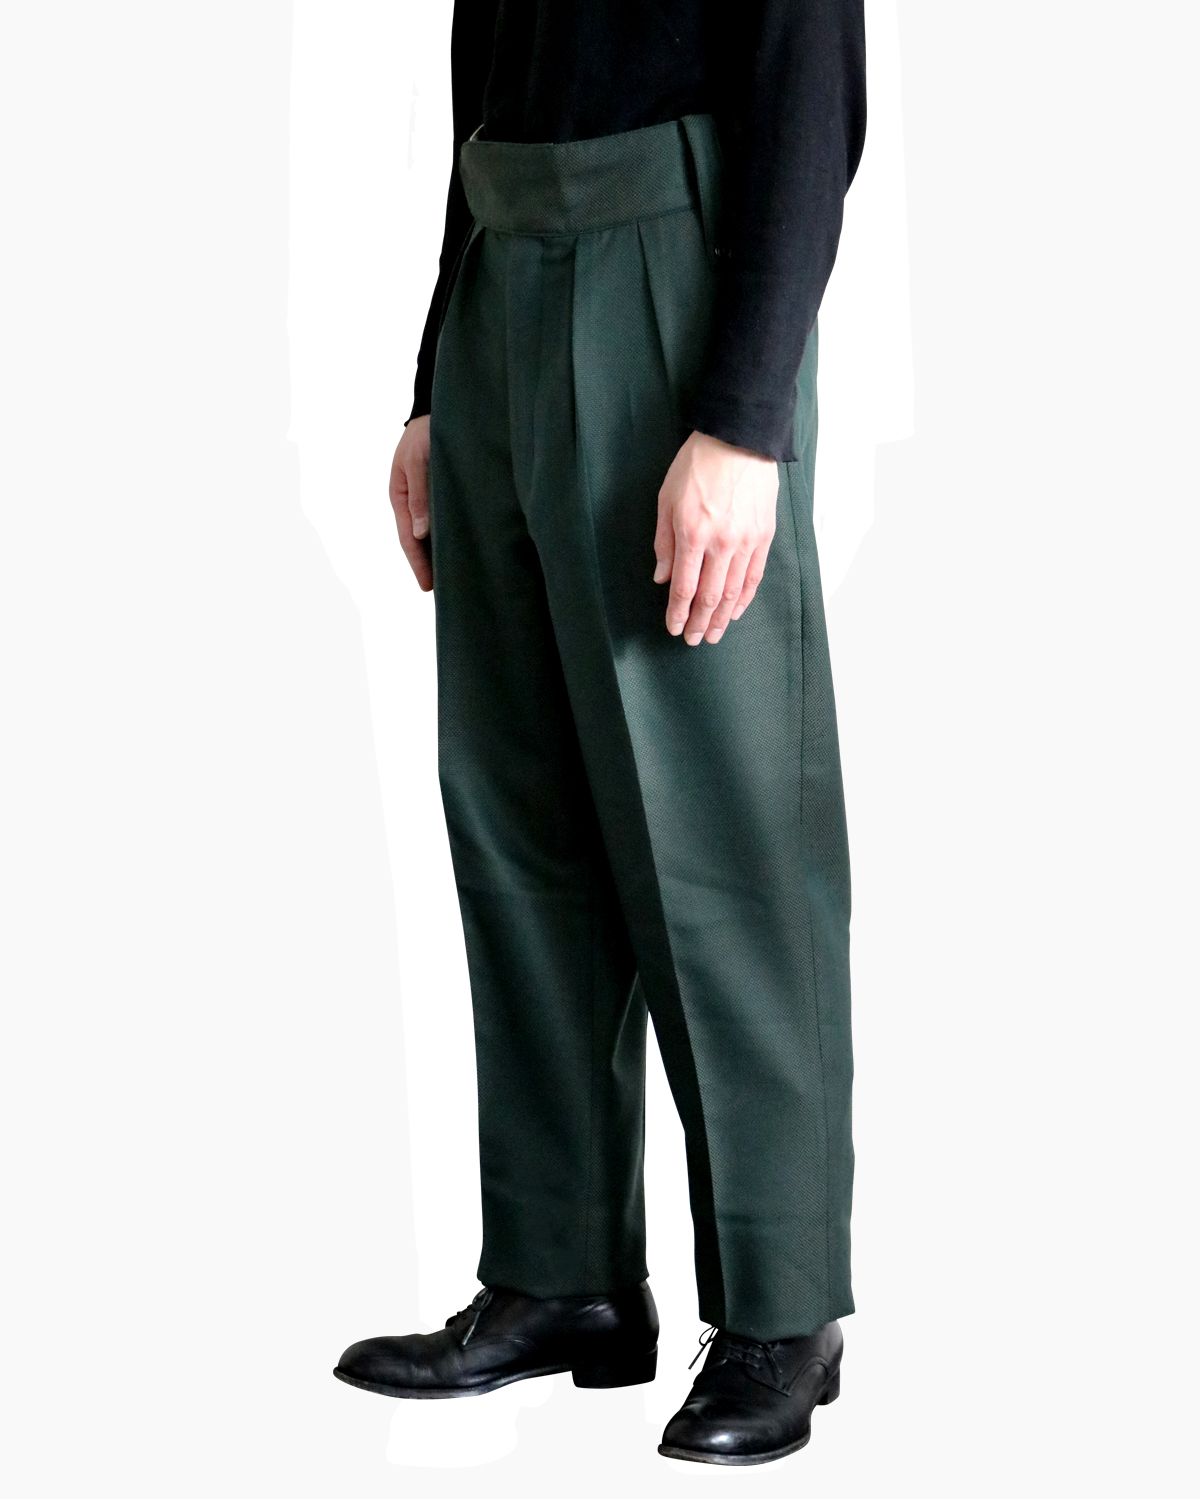 FOX BROTHERS Plain|BELTLESS – Green|NEAT